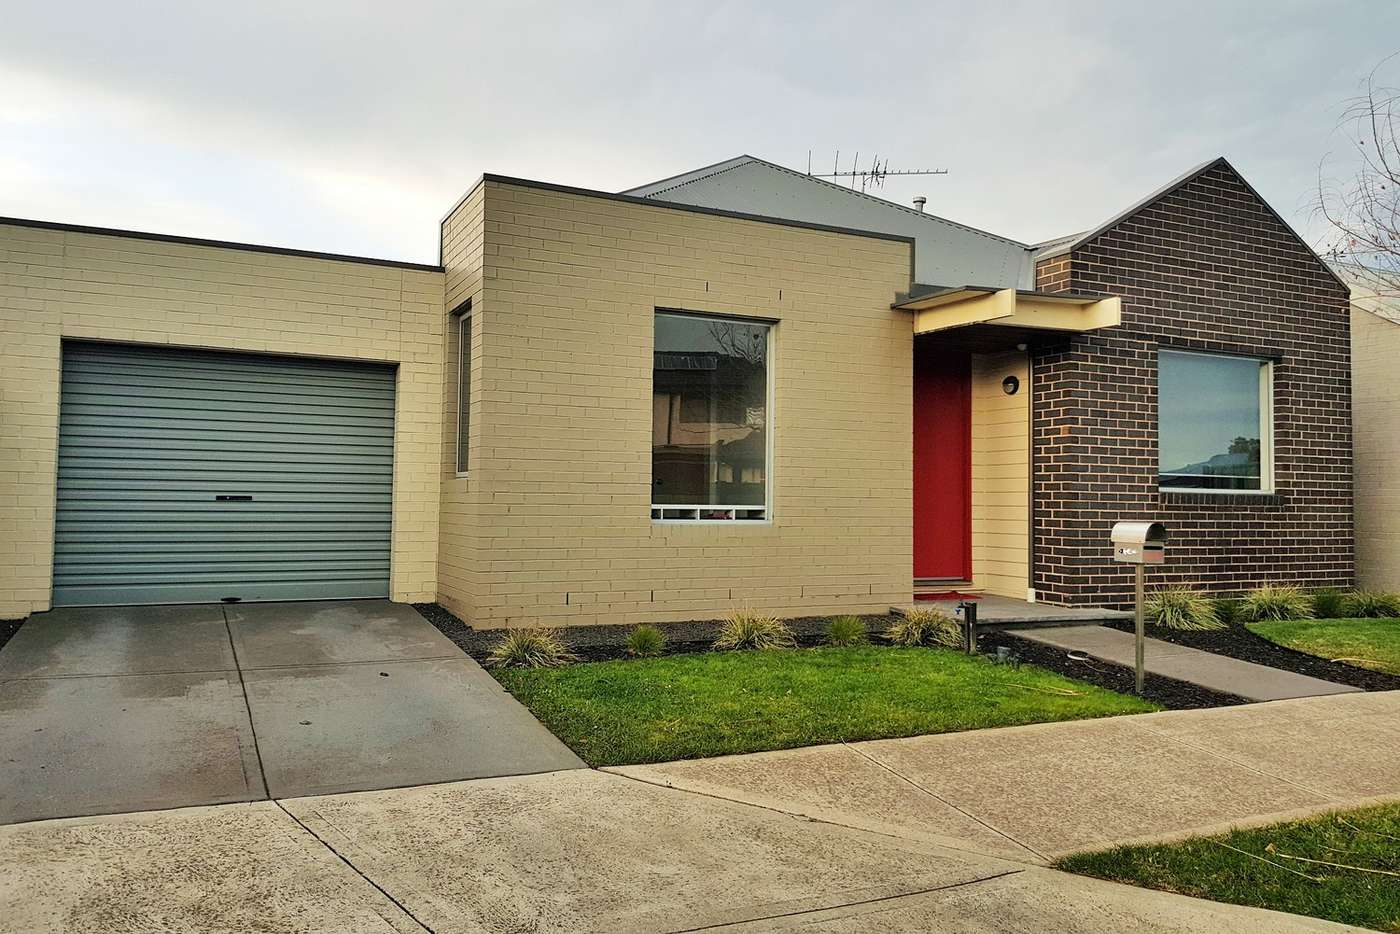 Main view of Homely house listing, 4 Hawthorn Lane, Craigieburn VIC 3064